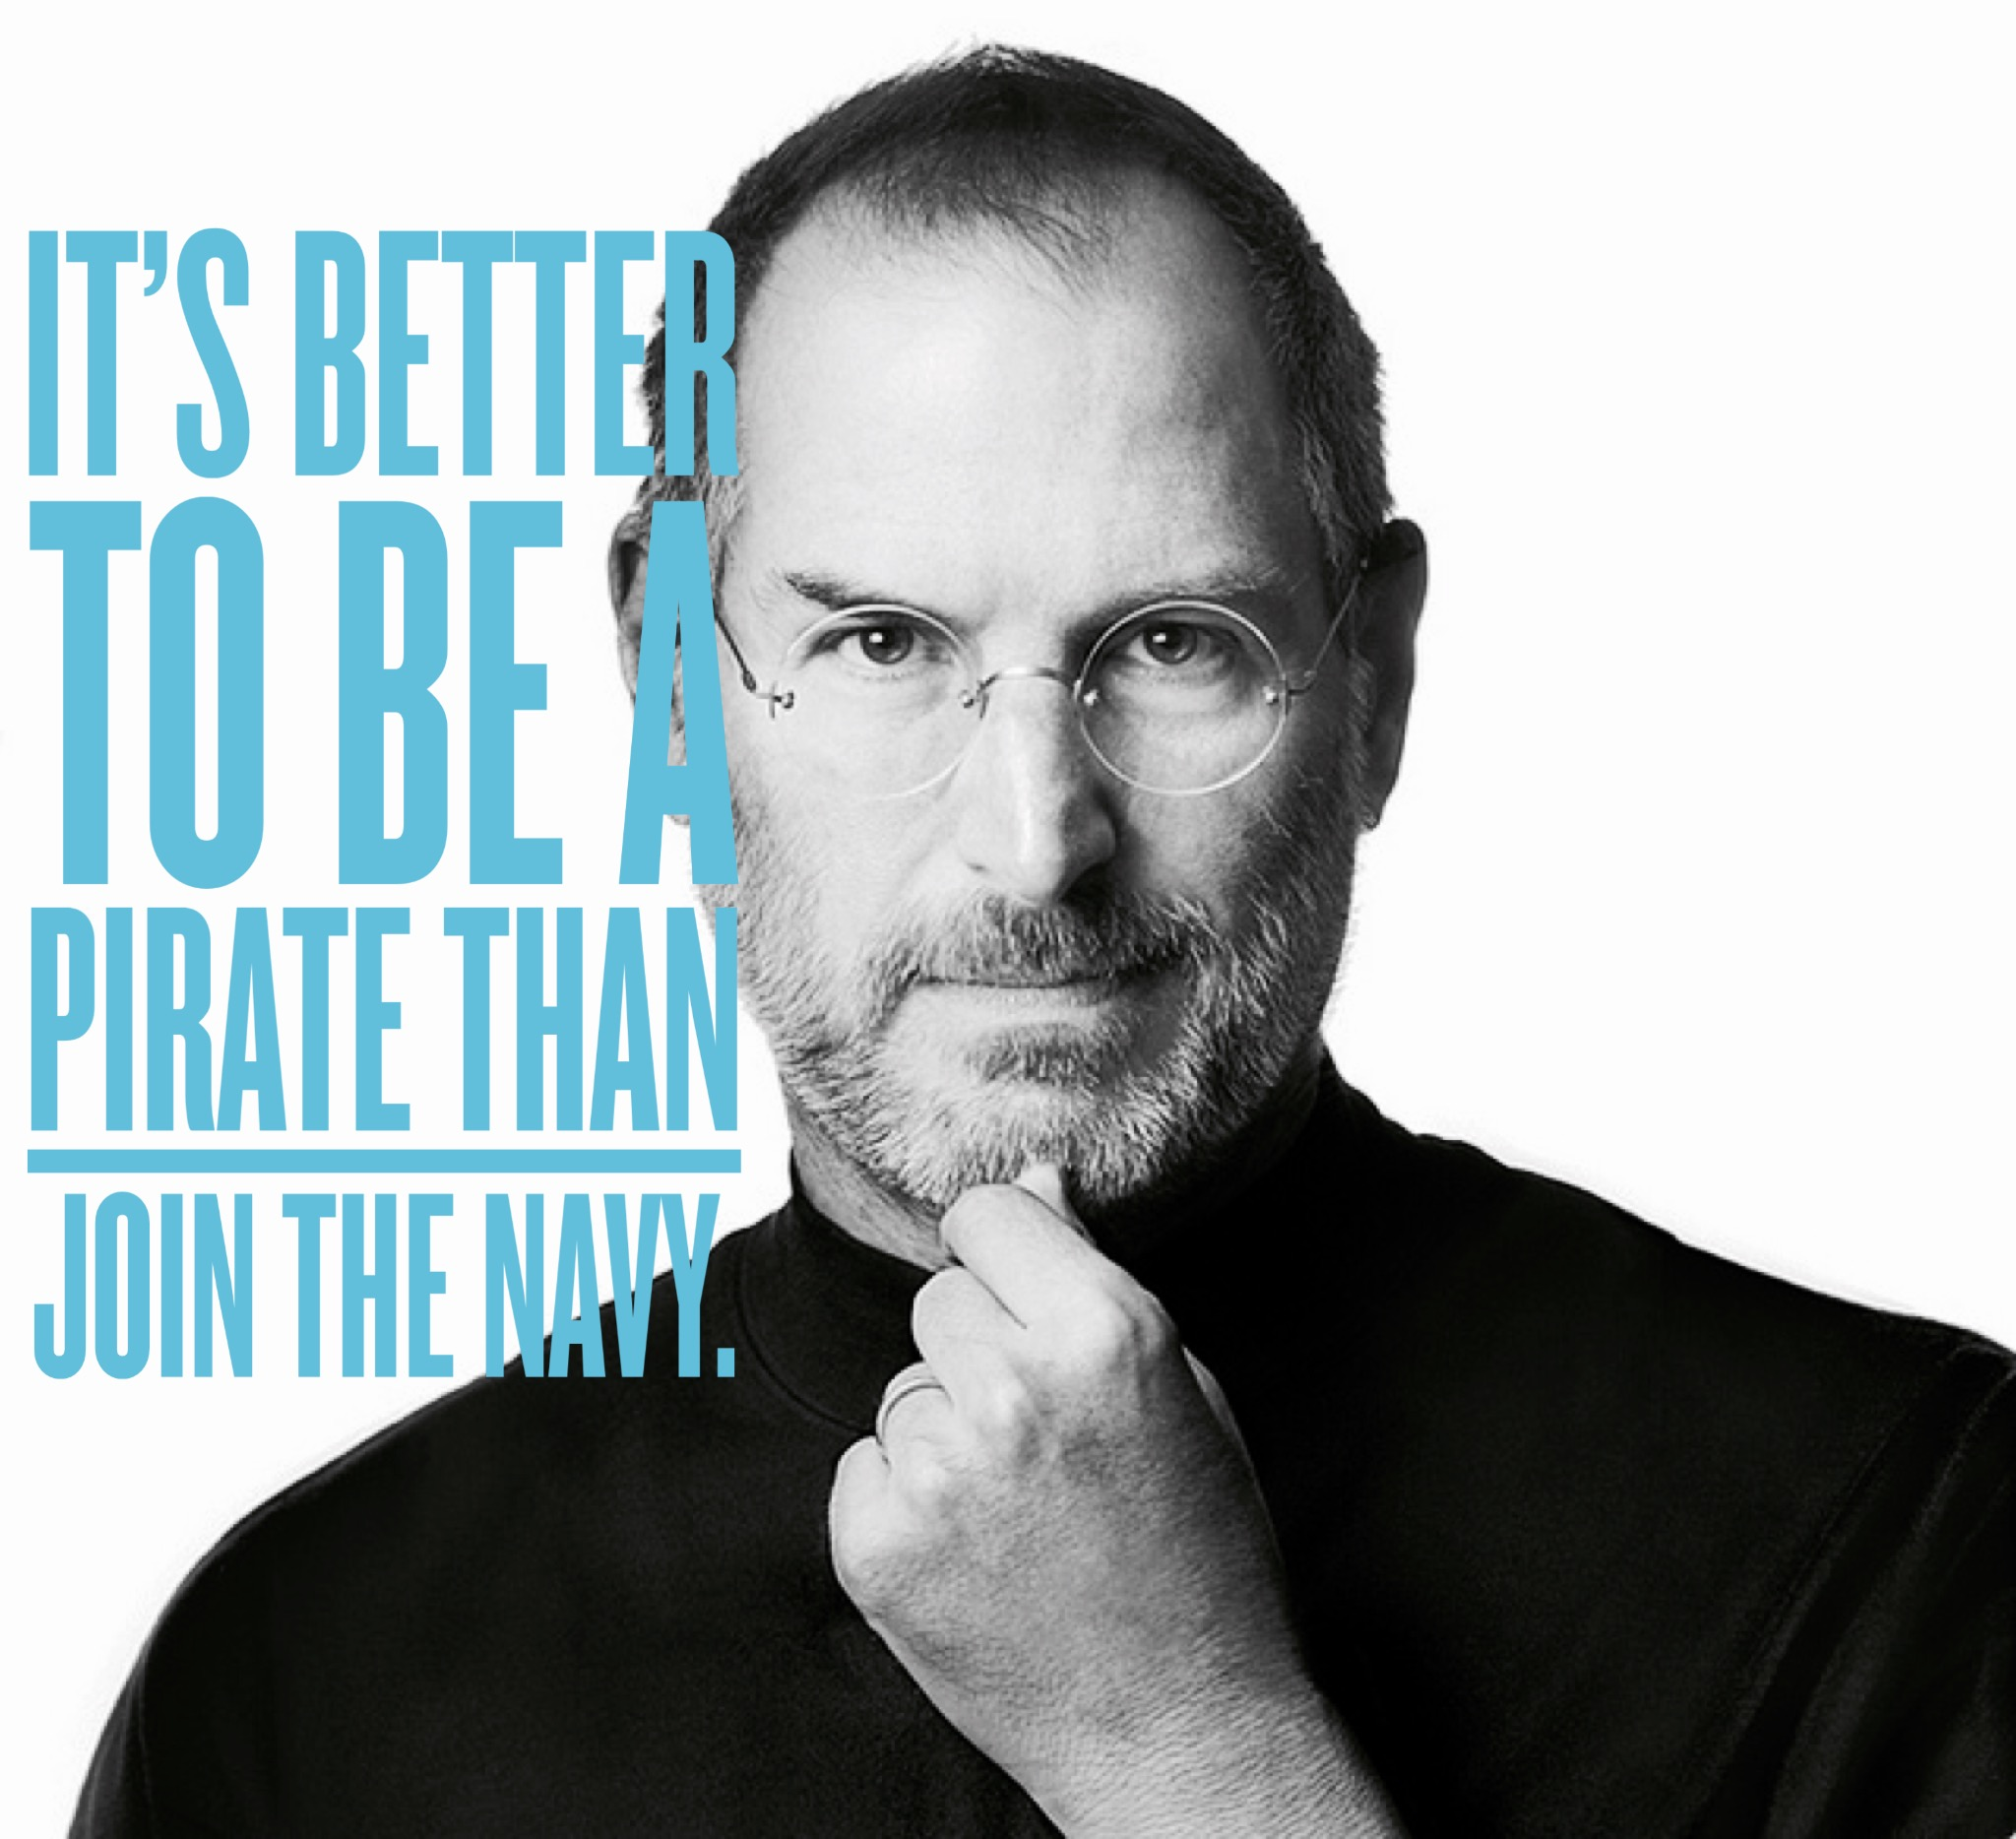 The 20 Best Steve Jobs Quotes On Leadership, Life and Innovation